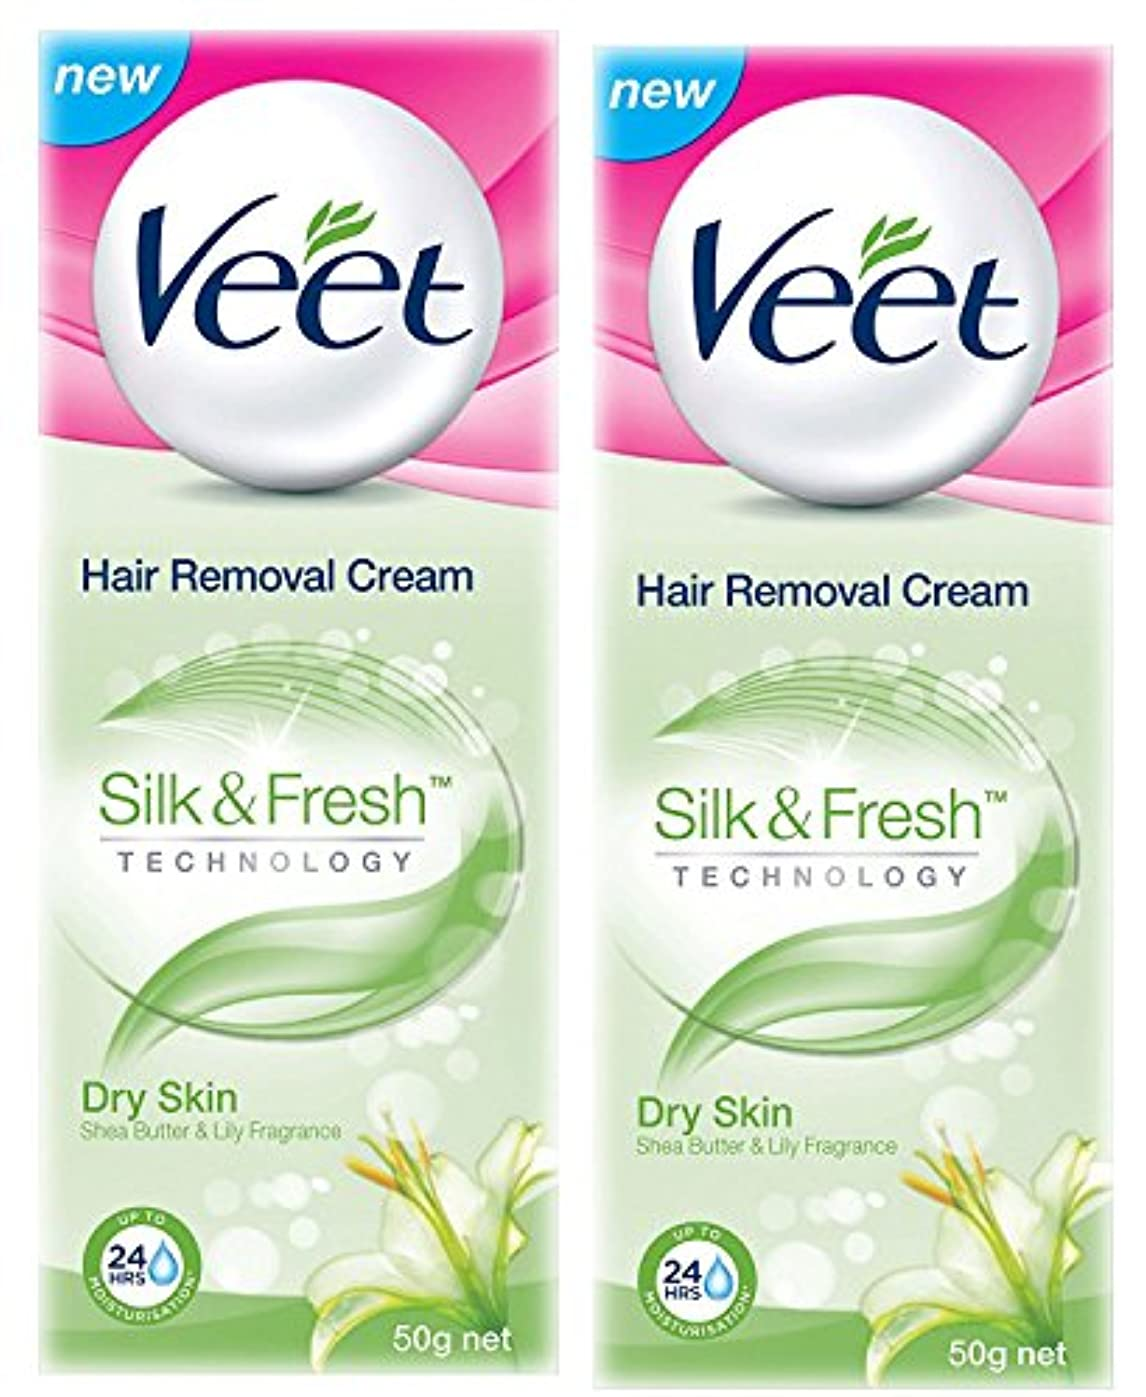 フォークマカダム落とし穴Veet Dry Skin Hair Removal Cream - 50 g (Pack of 2)